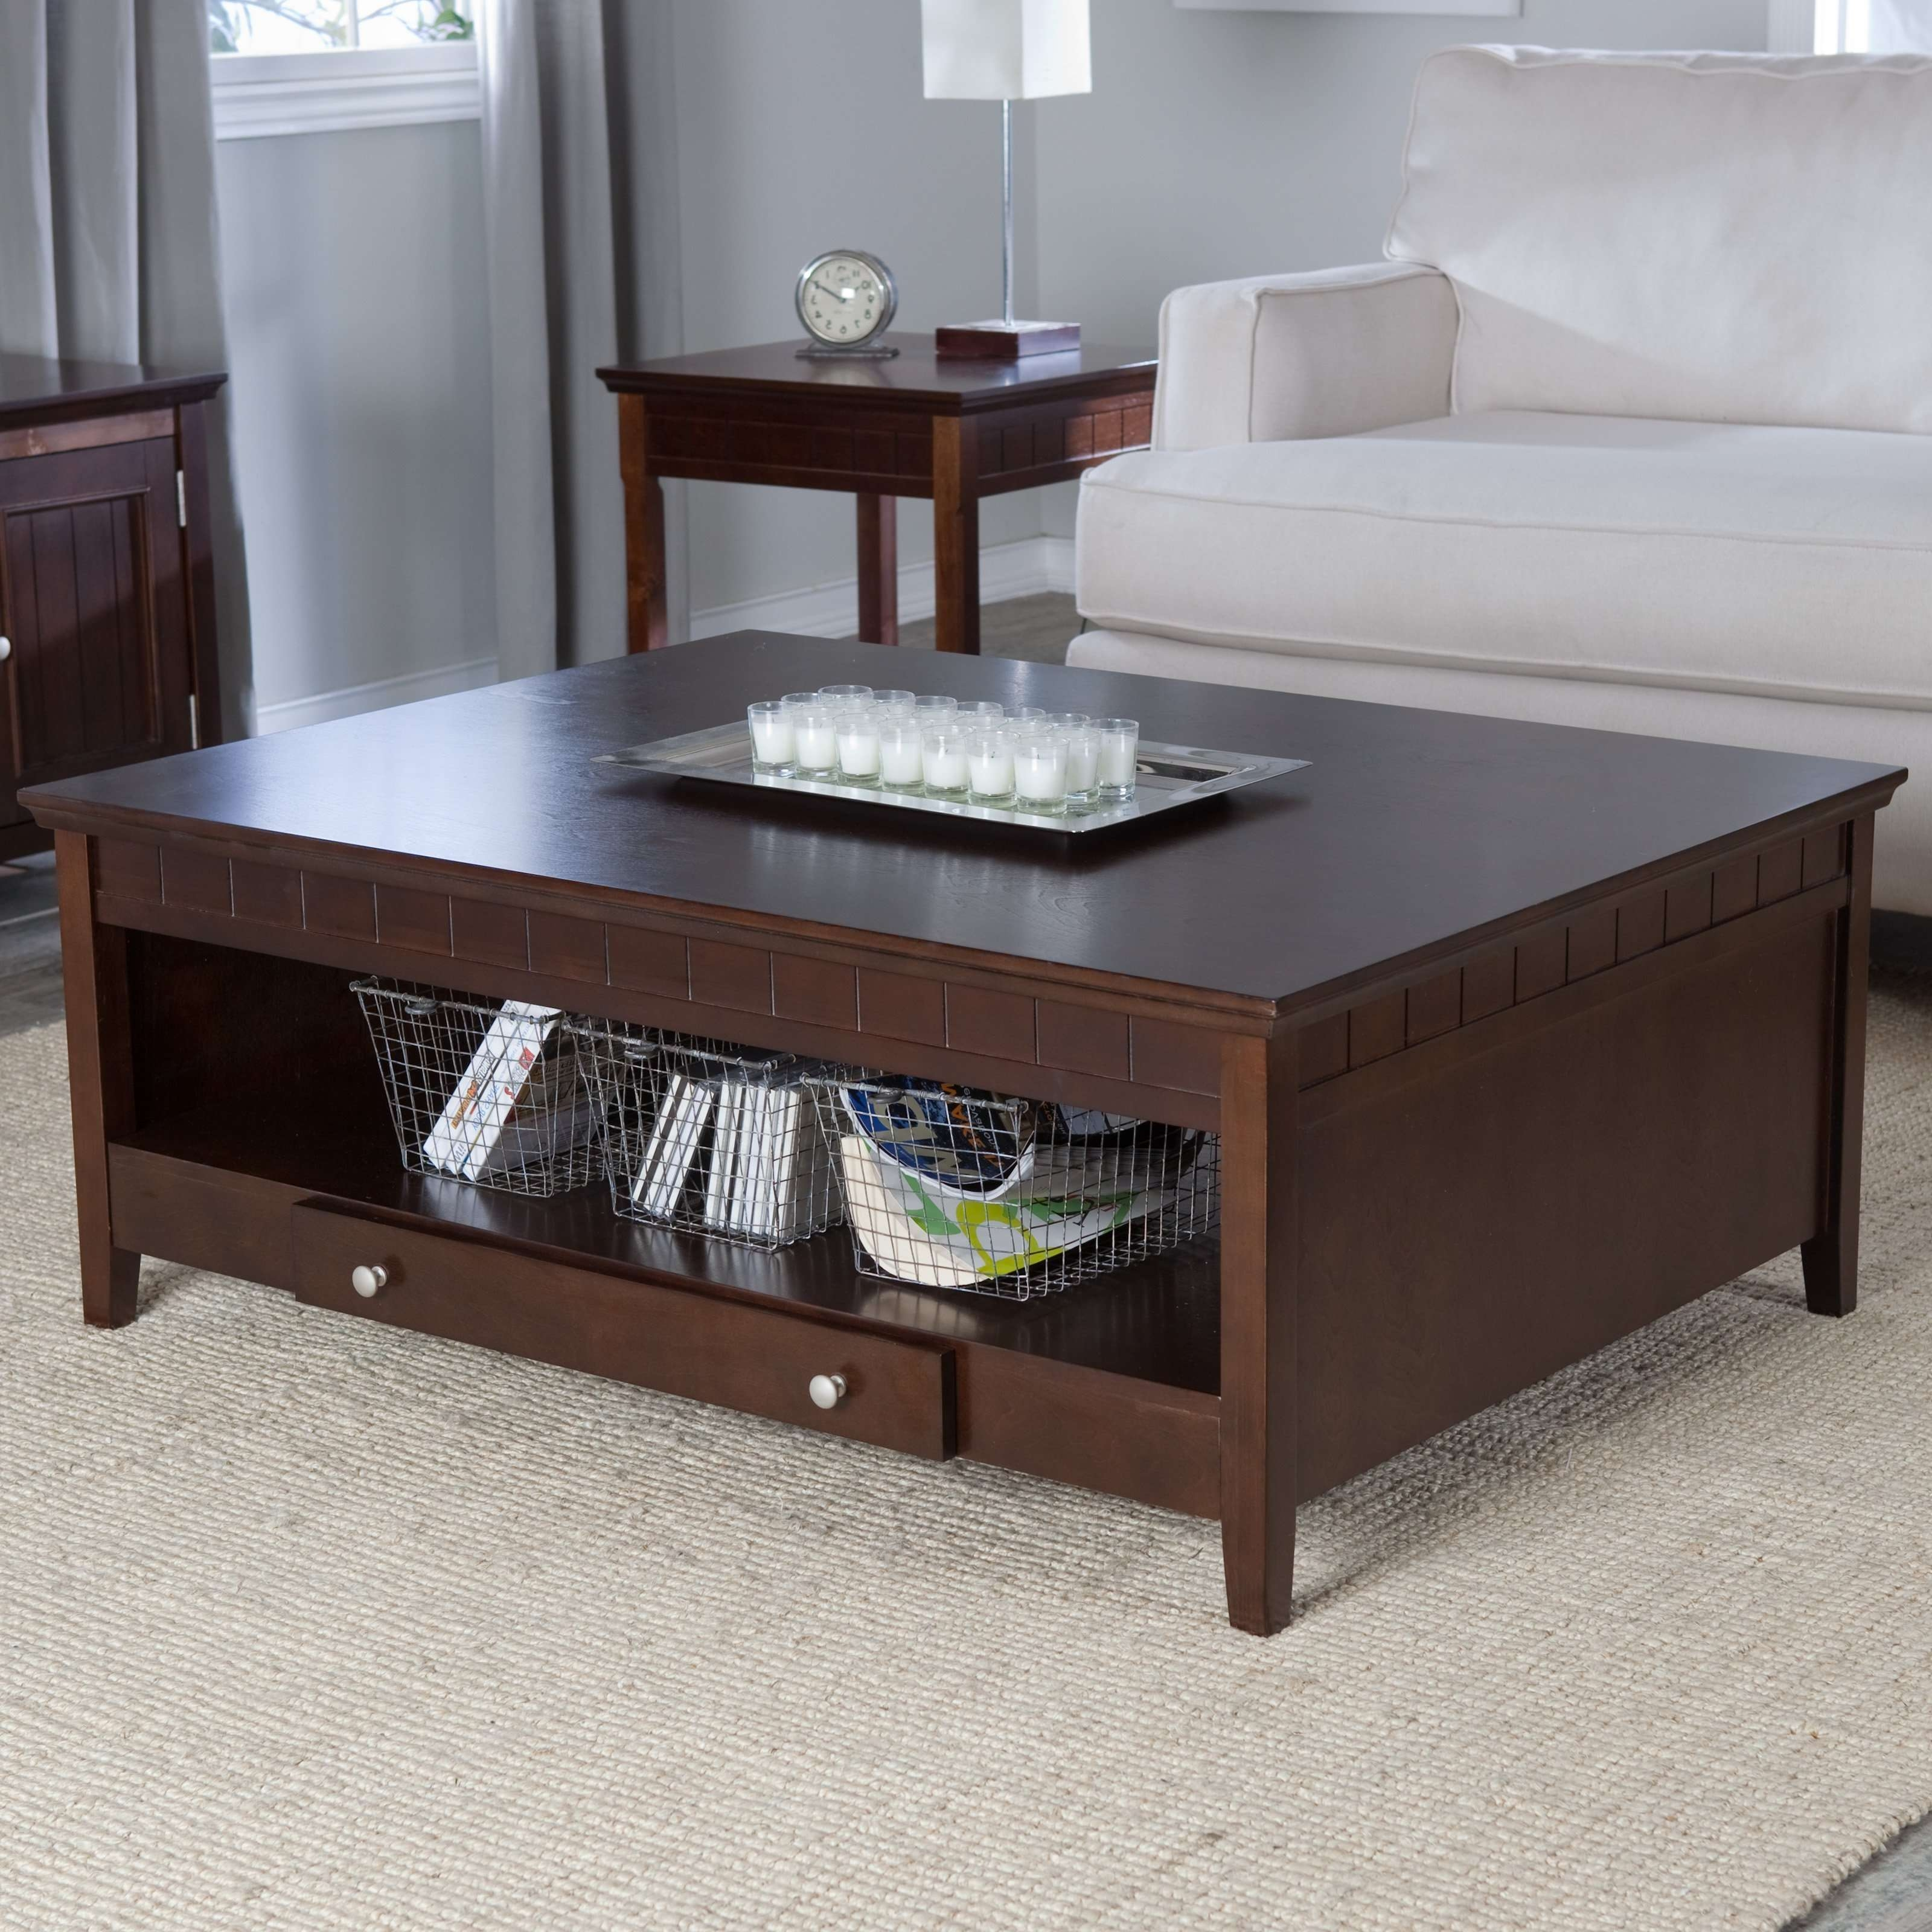 Modern Square Coffee Table With Storage With Modern Espresso Throughout Fashionable Square Coffee Tables With Storages (View 19 of 20)